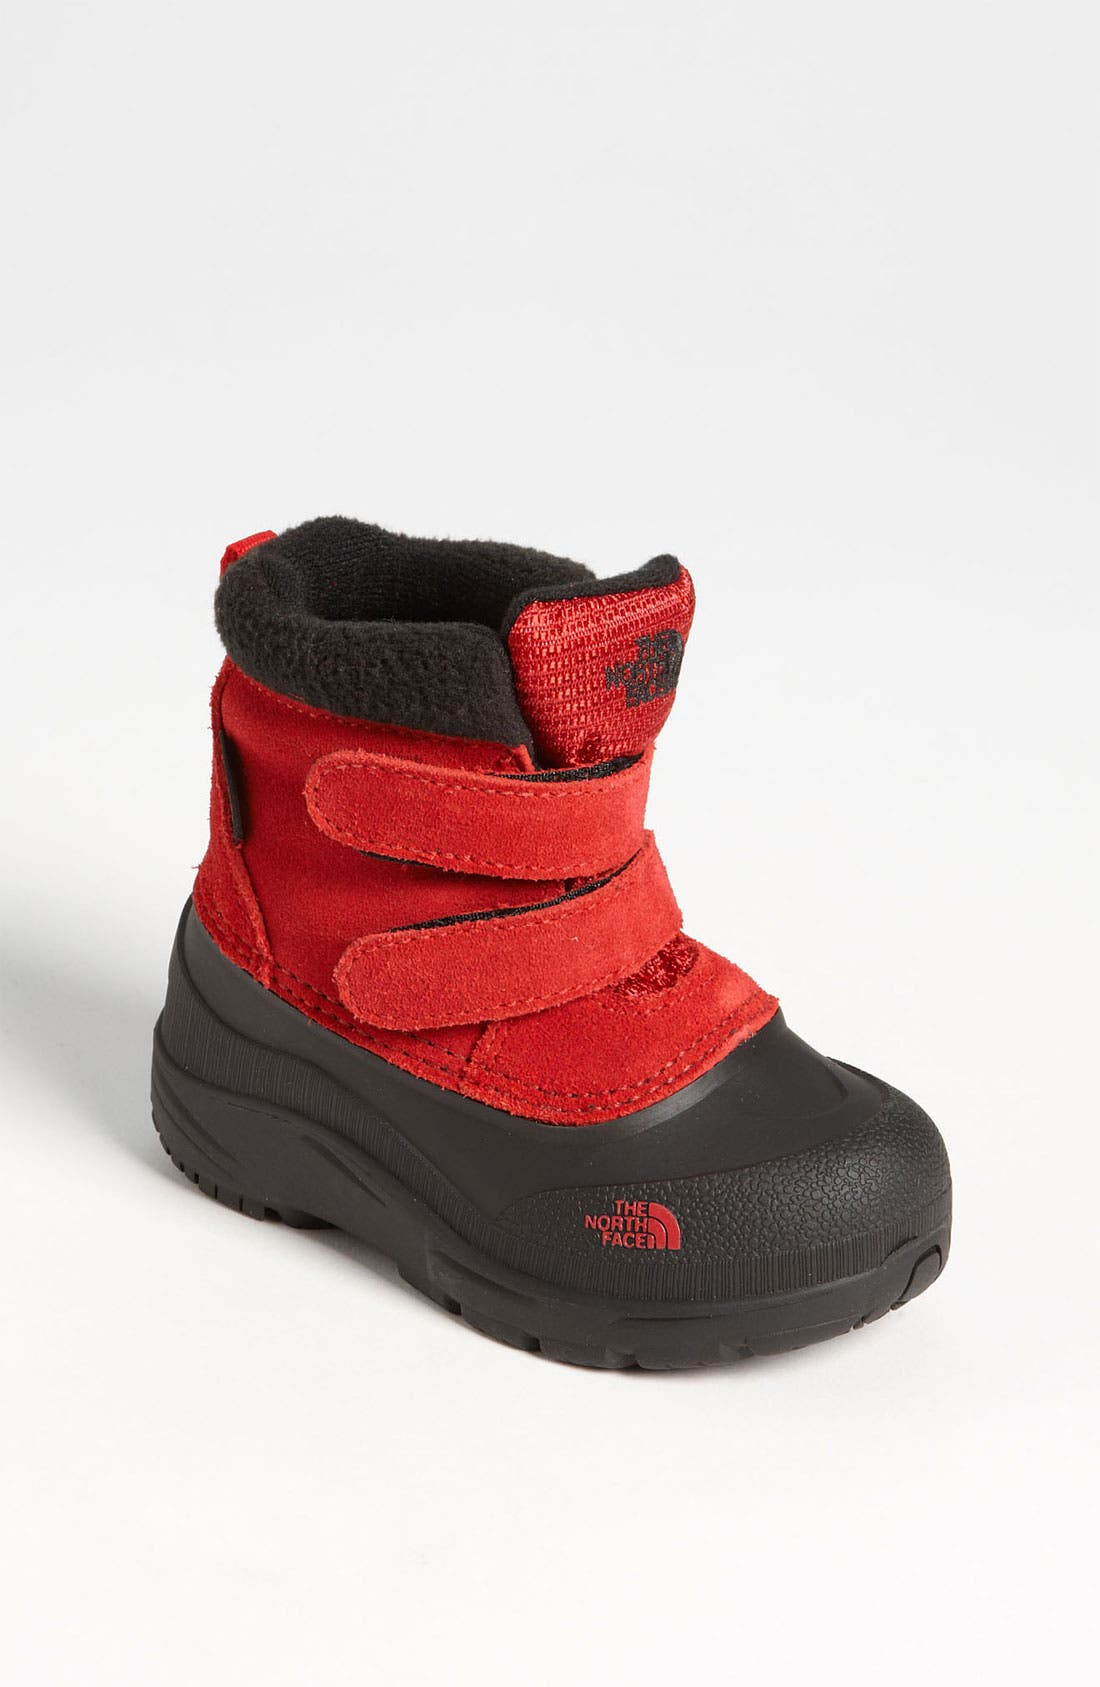 Main Image - The North Face 'Chilkat' Boots (Walker & Toddler)